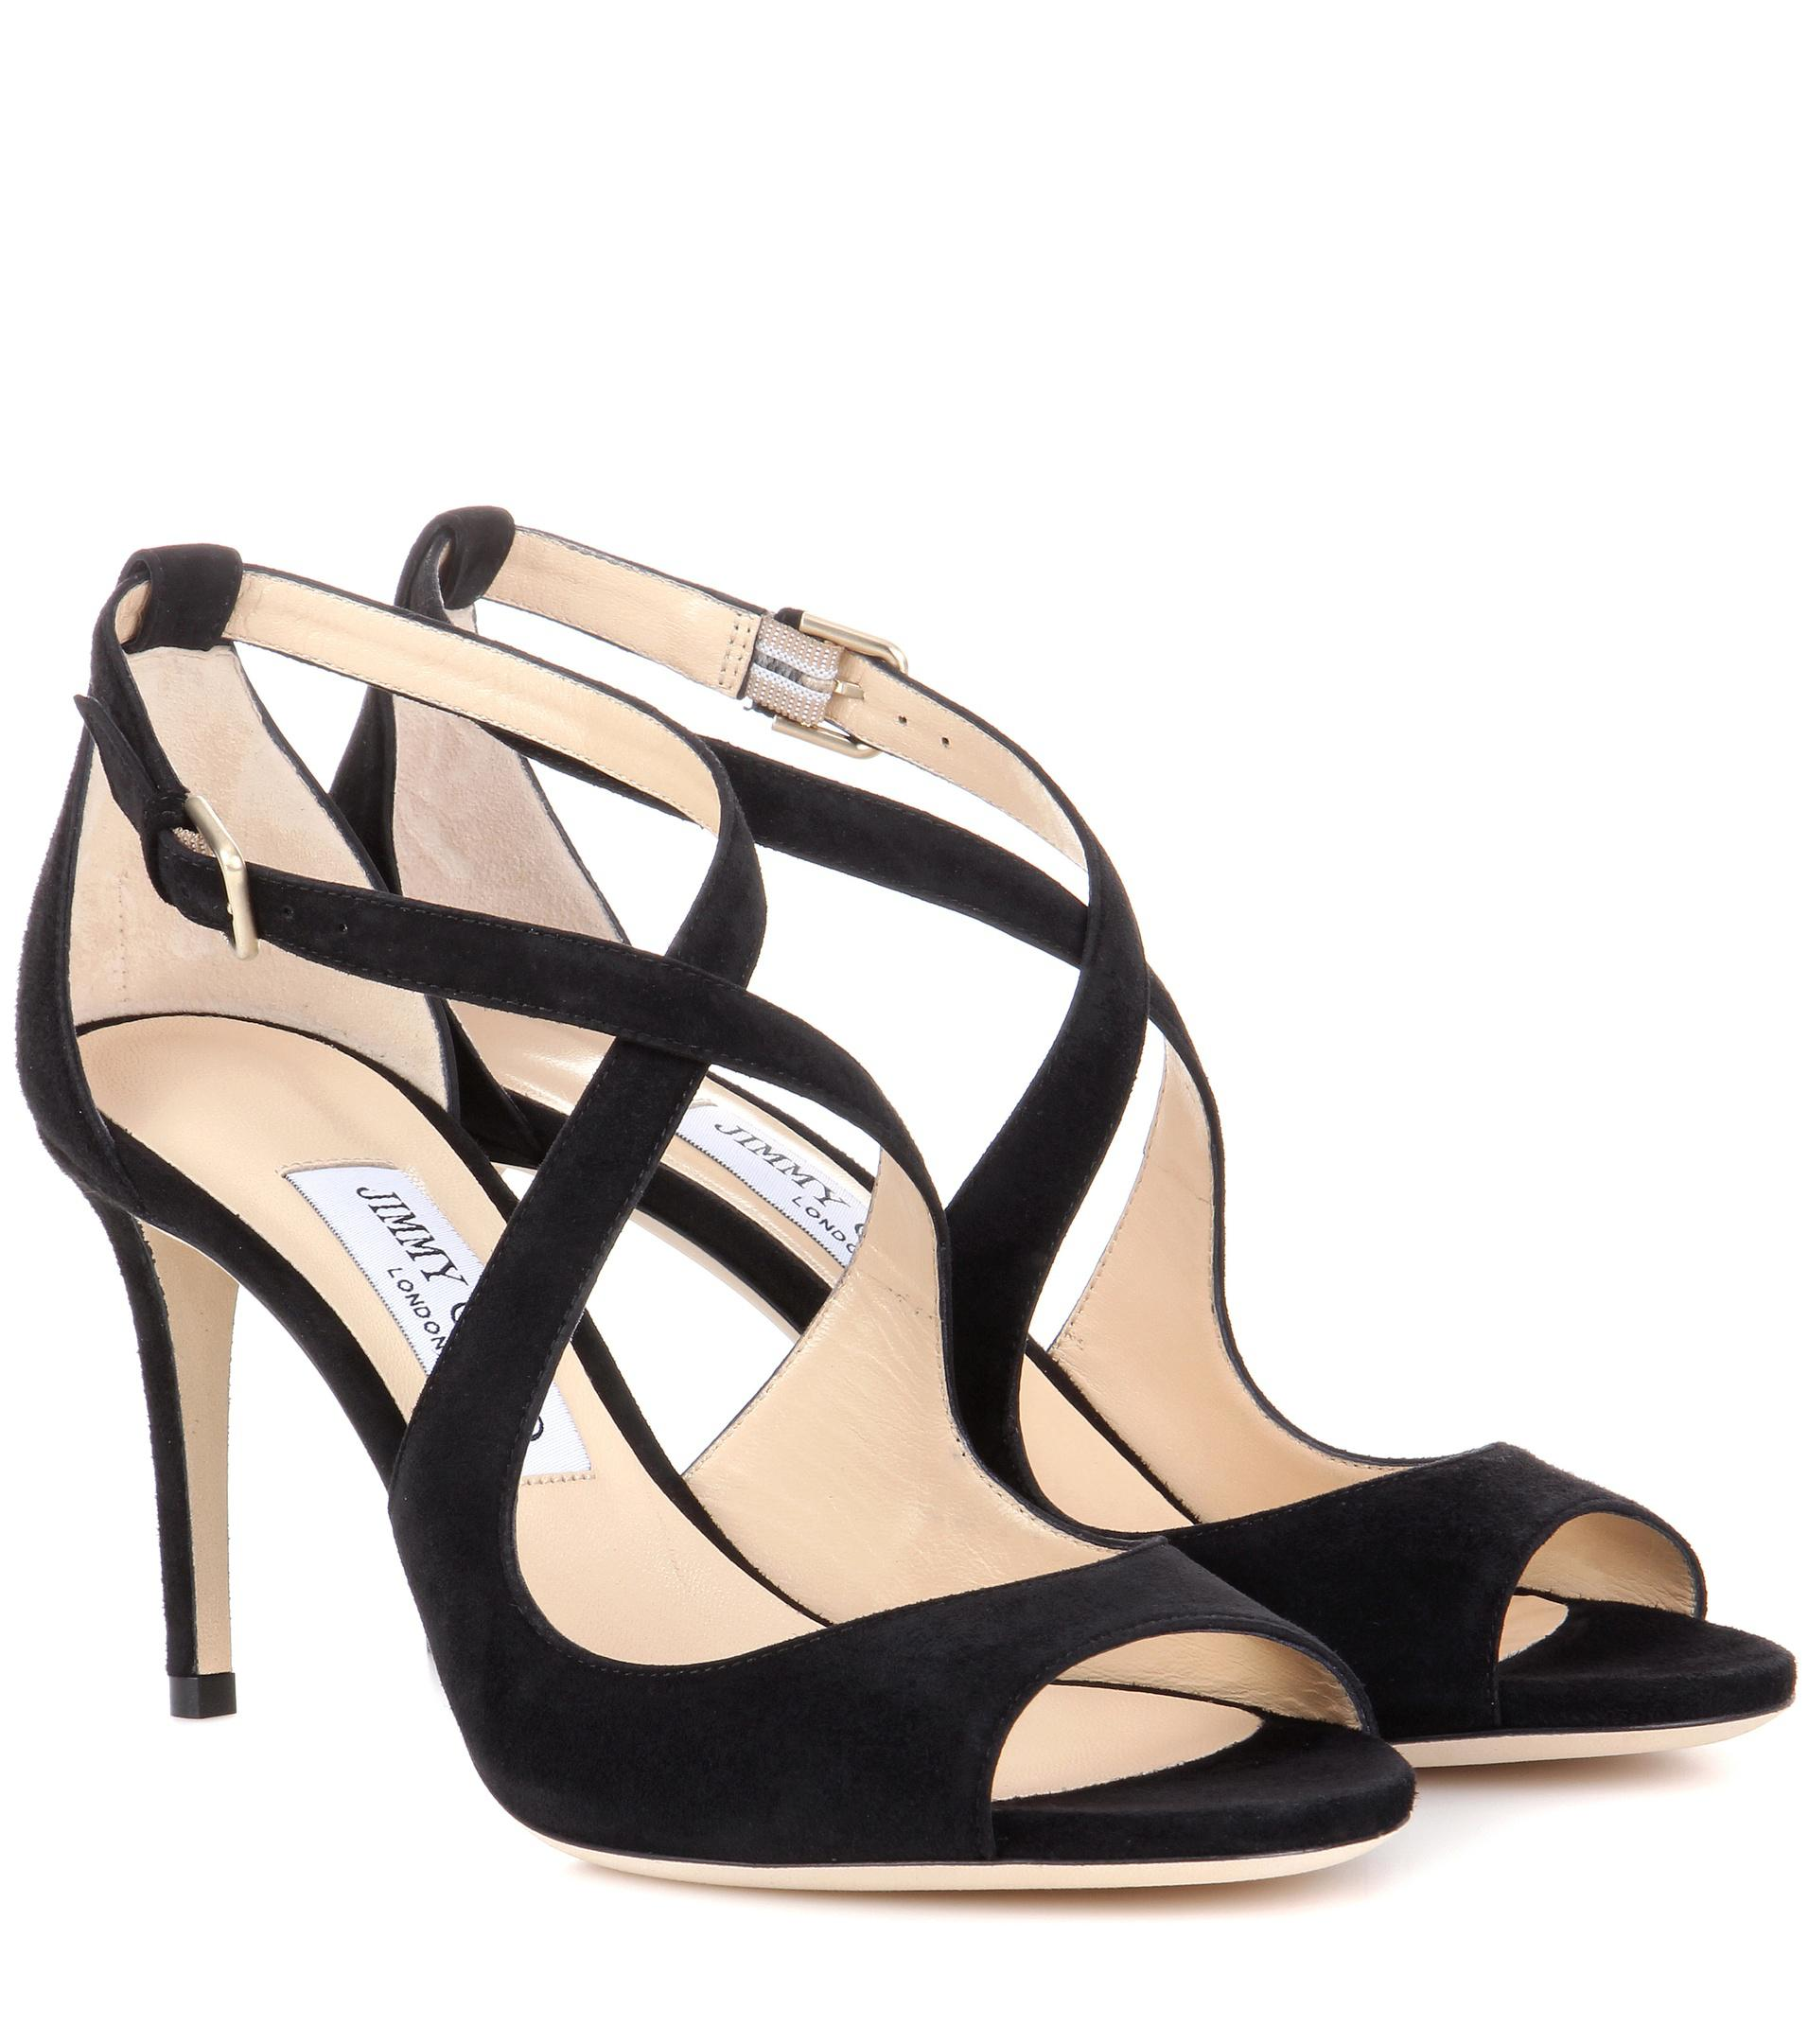 0a3d0c21ca9 Lyst - Jimmy Choo Emily 85 Suede Sandals in Black